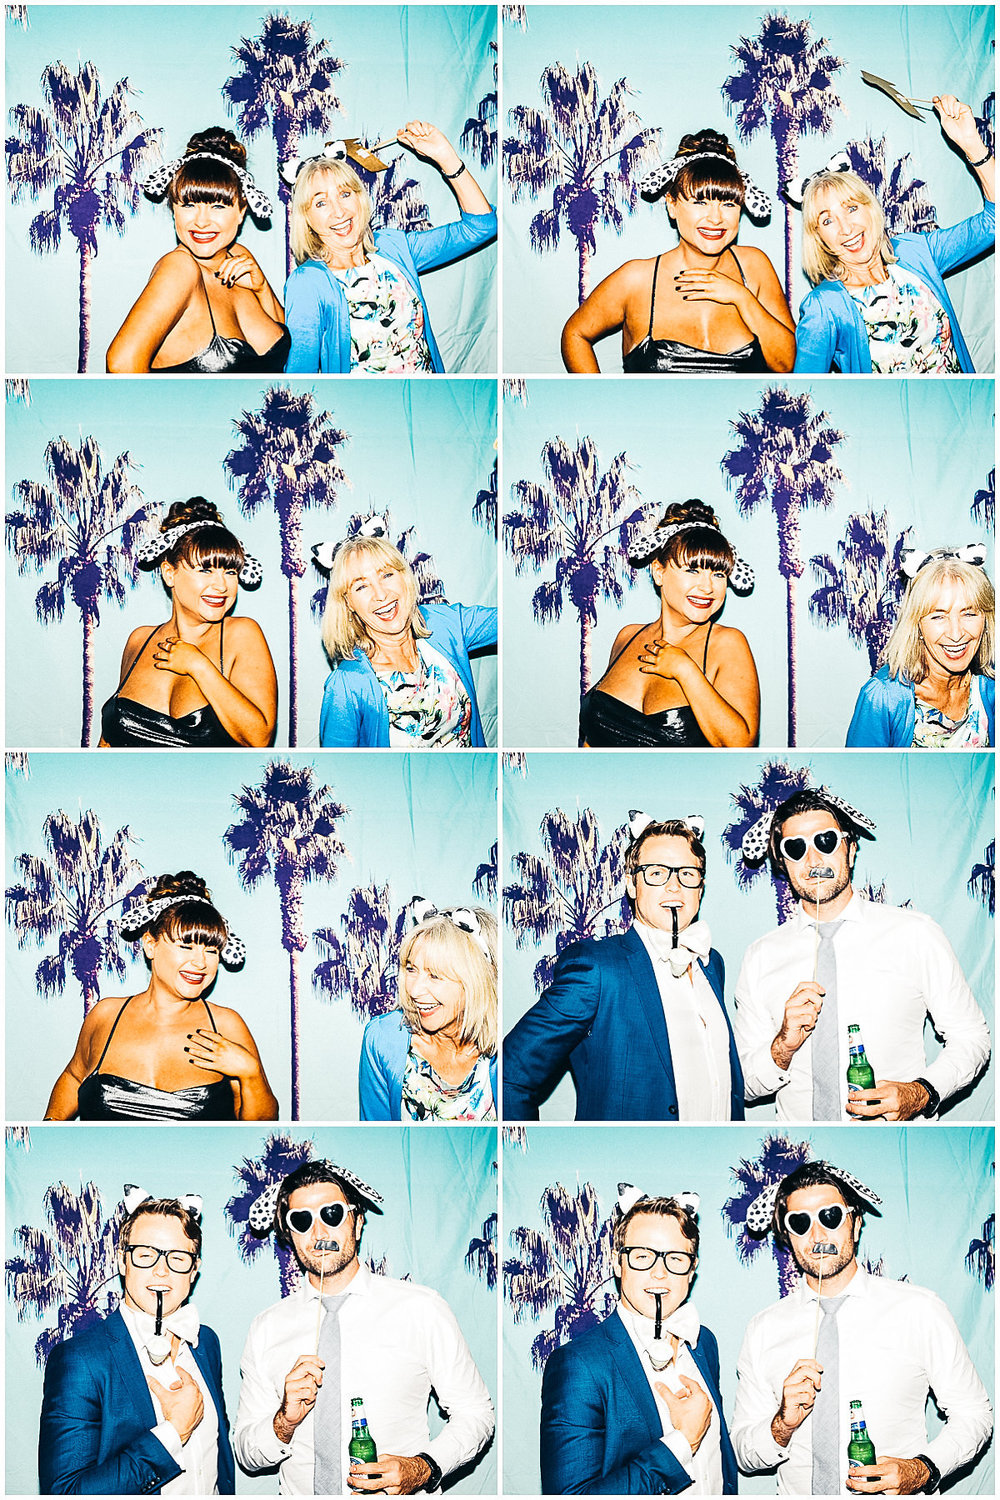 photobooth-034.jpg